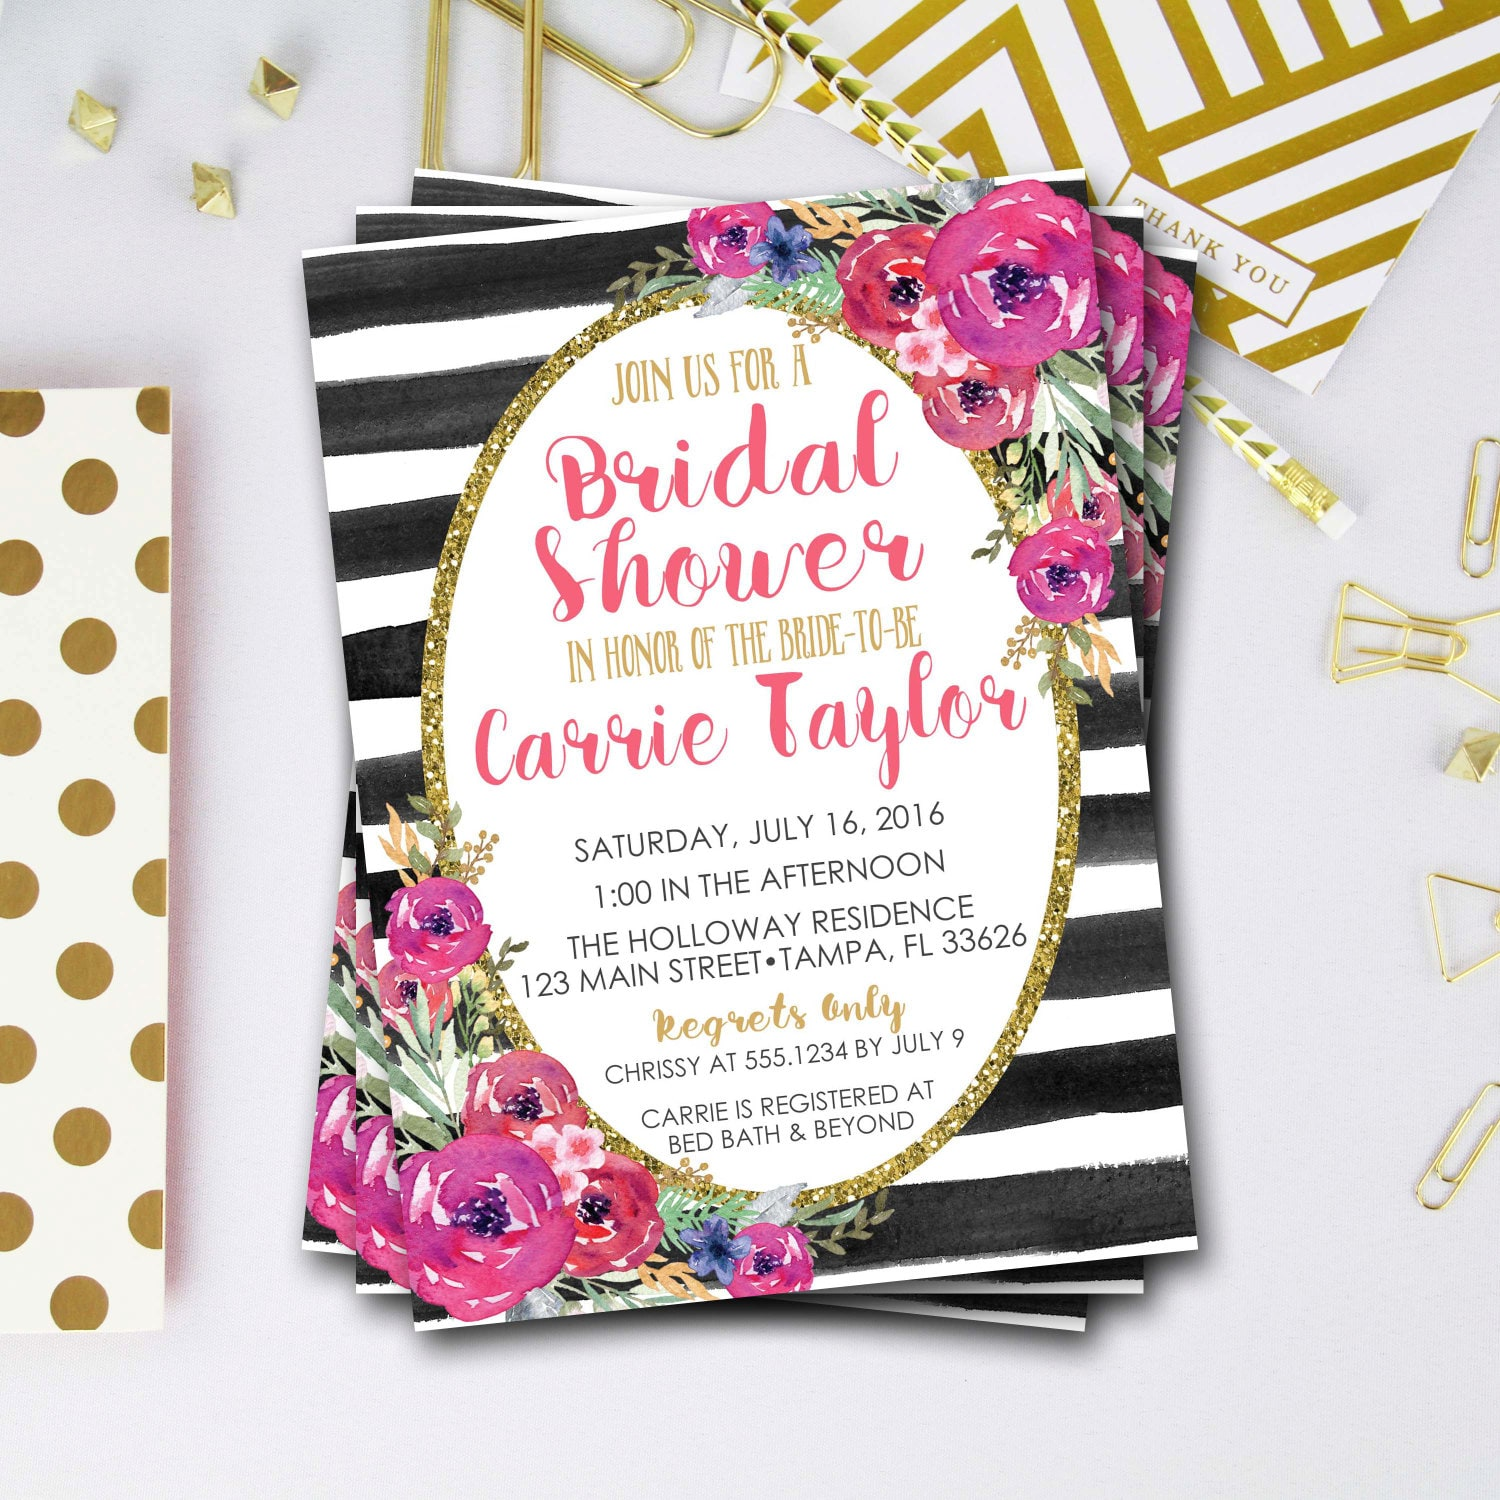 Flower bridal shower invitation pink and gold bridal shower flower bridal shower invitation pink and gold bridal shower invitation glitter bridal shower invitation glitter invite diy printable filmwisefo